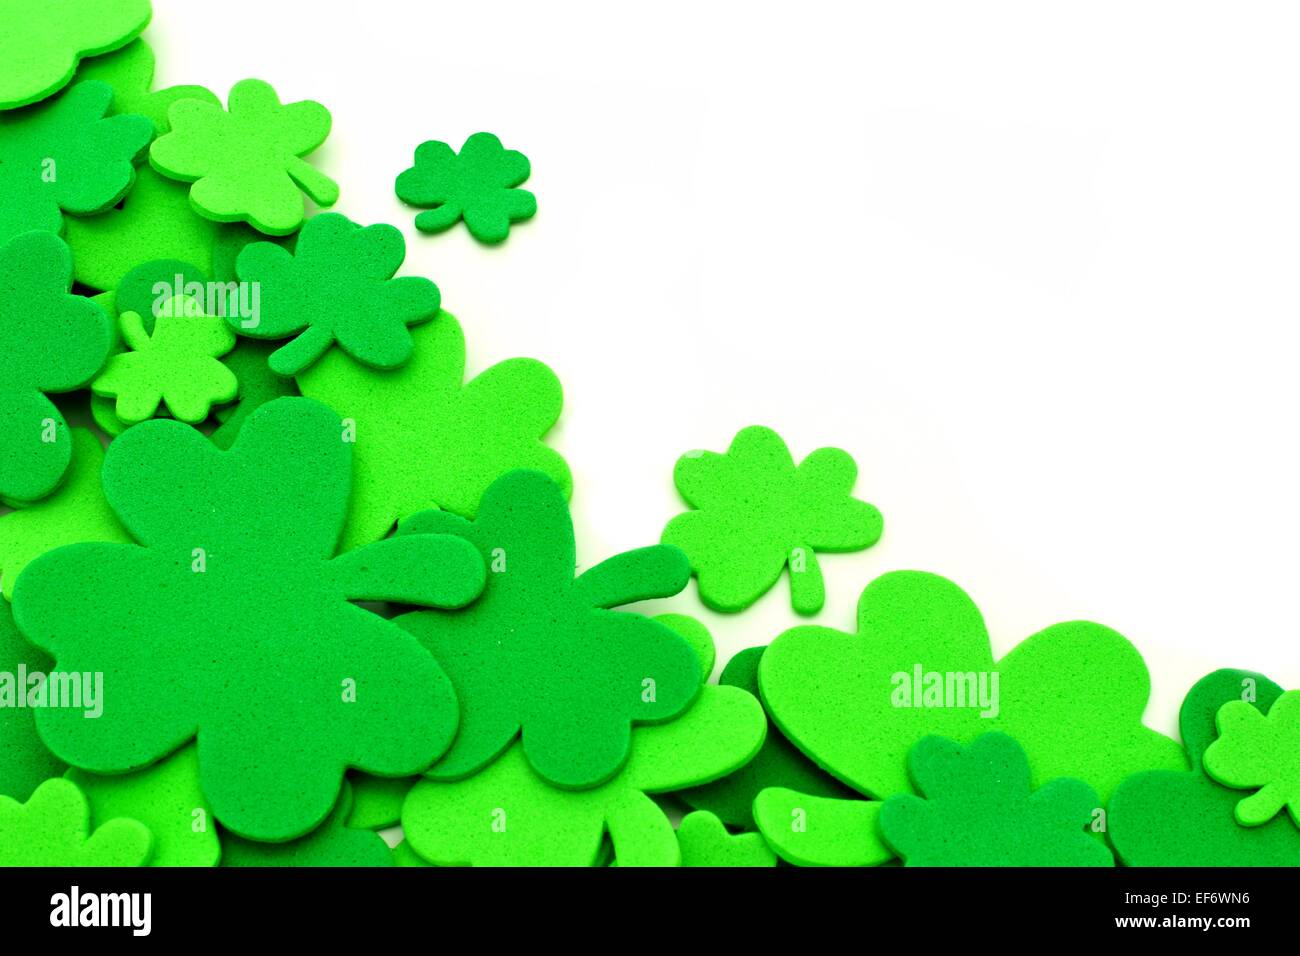 st patricks day shamrock border stock photos u0026 st patricks day